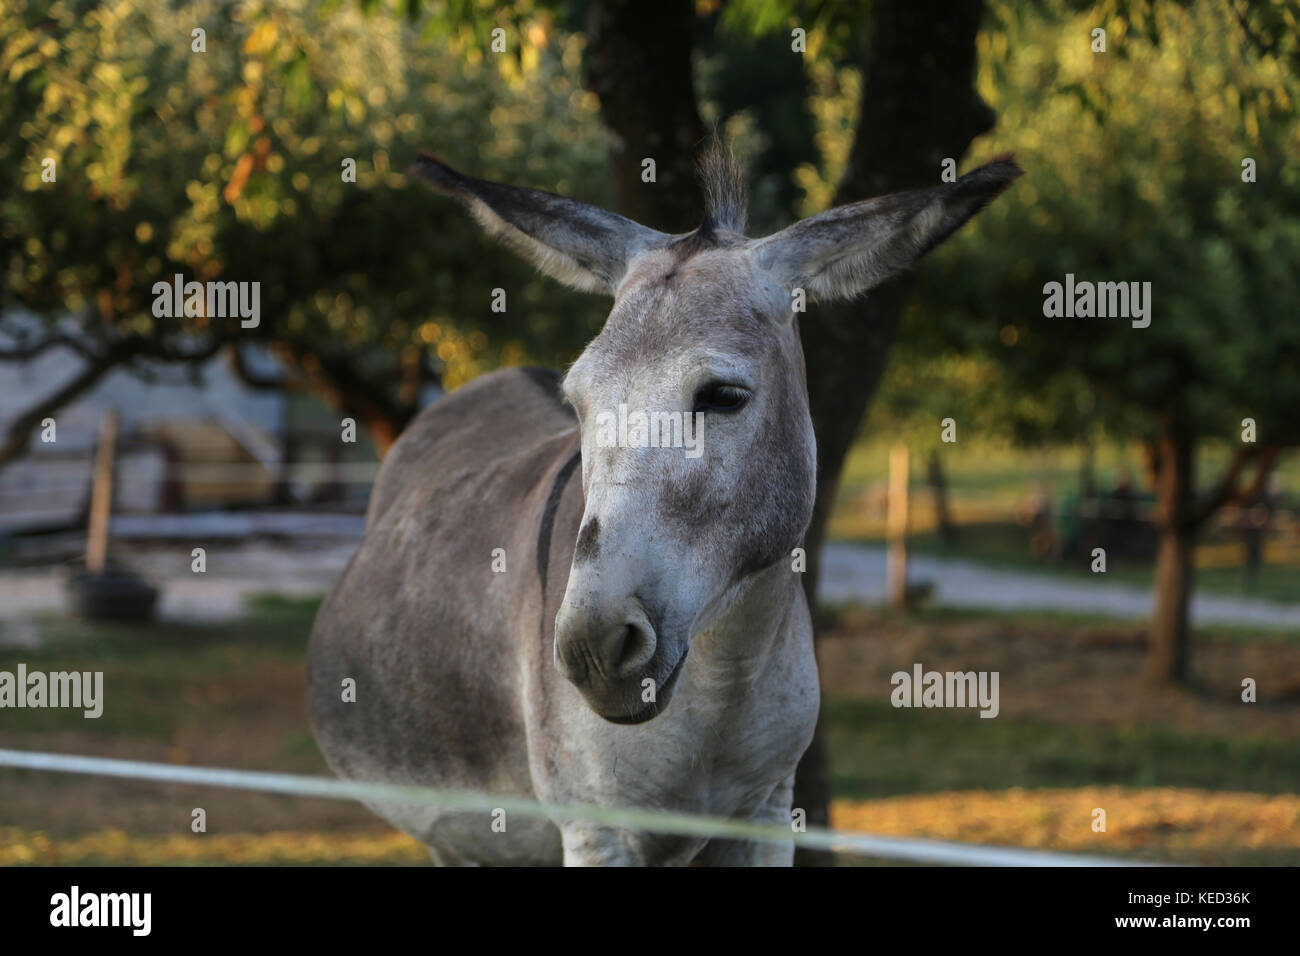 Gray donkeys in the open air - Stock Image